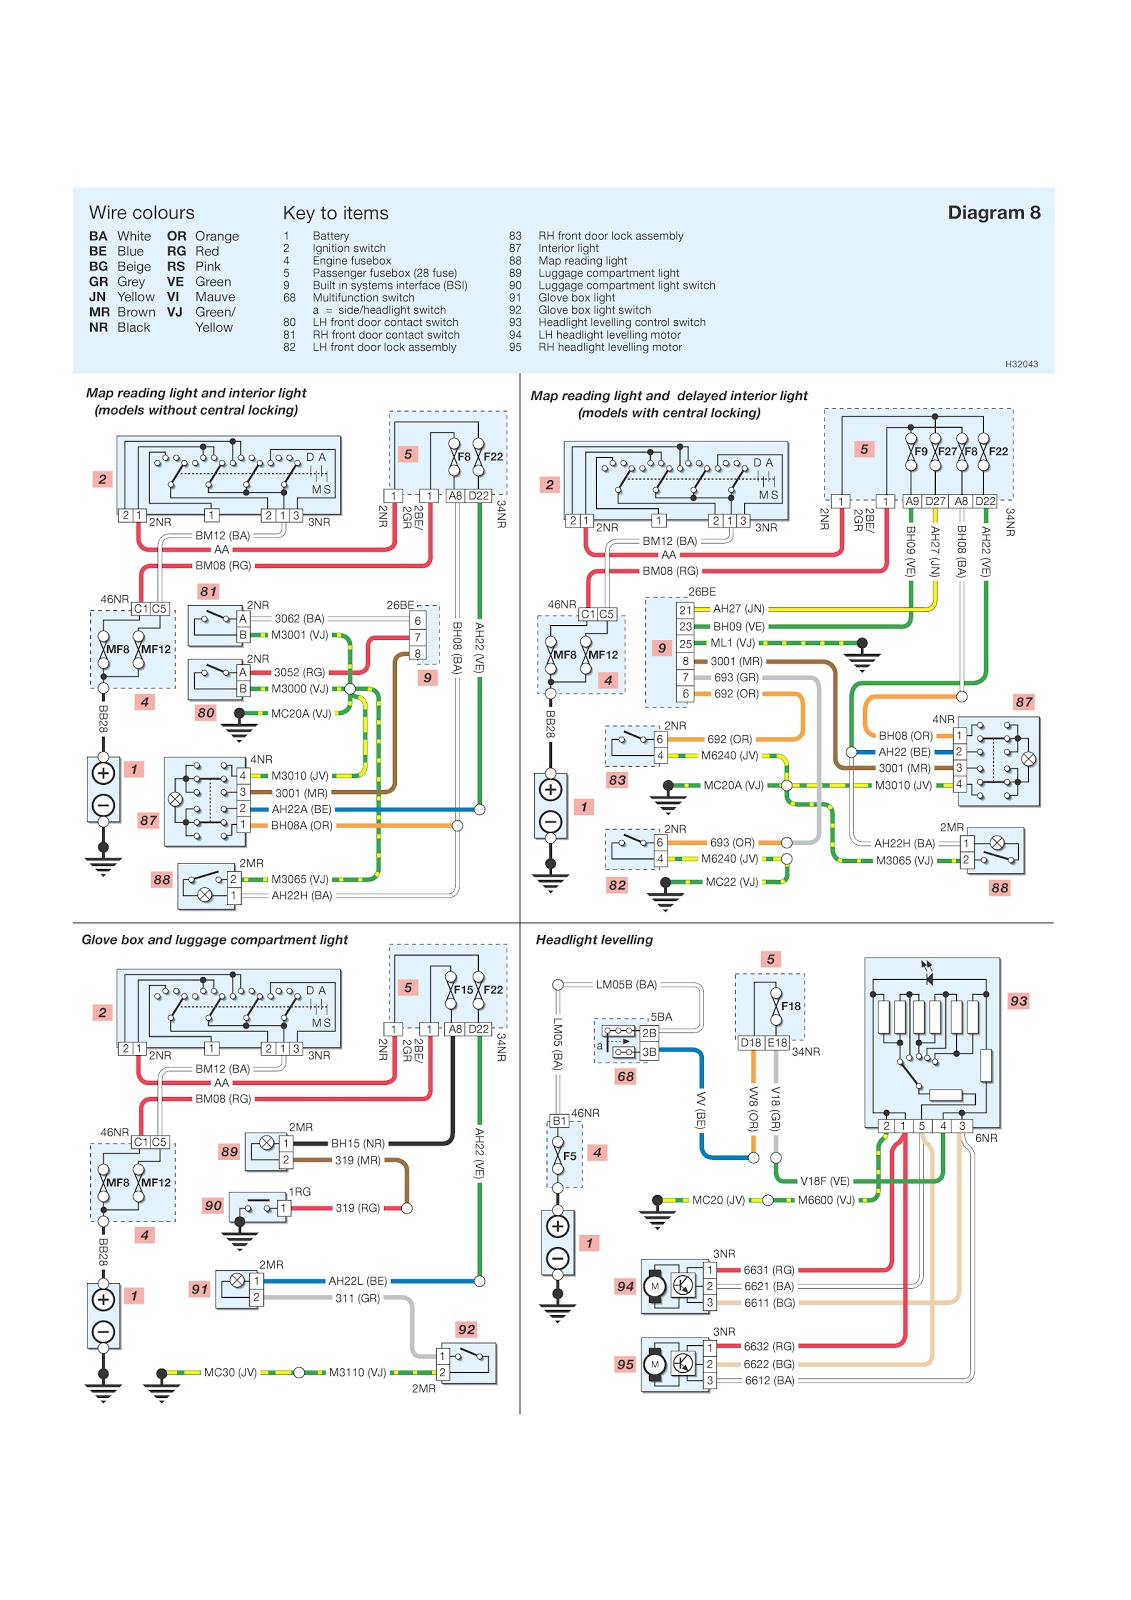 Peugeot 206 gti wiring diagram wiring diagram wonderful peugeot 205 wiring diagram photos electrical system peugeot 206 2002 amusing peugeot radio wiring diagrams asfbconference2016 Gallery